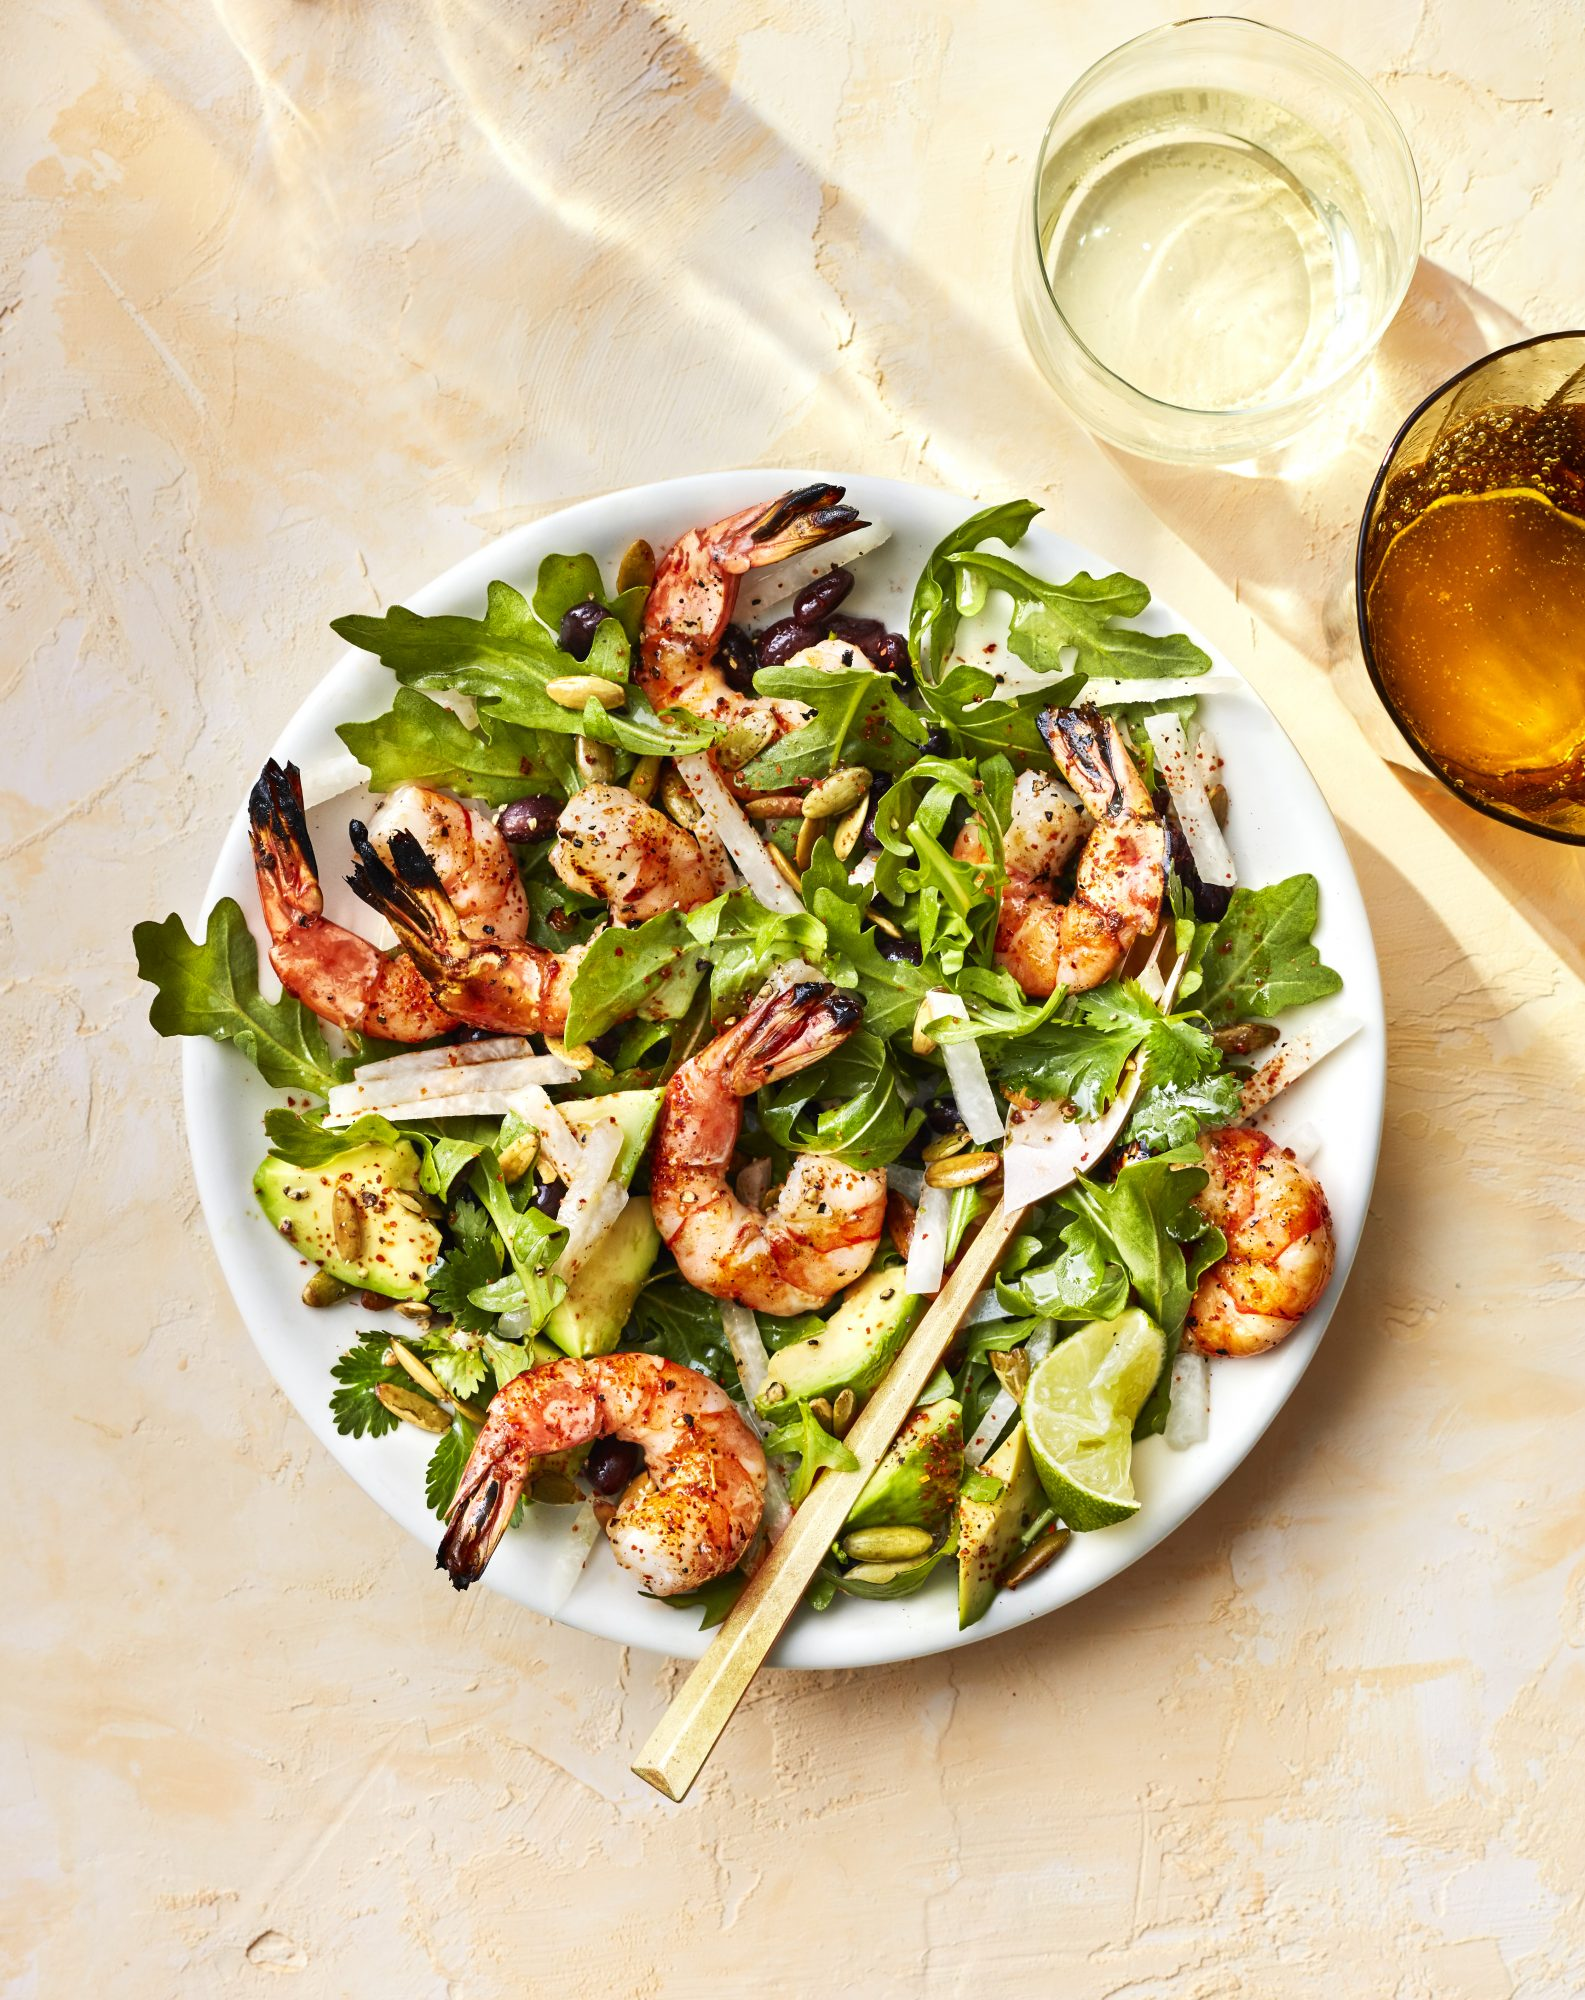 MARCH 2019 health magazine woman diet food recipe GRILLED SHRIMP WITH BLACK BEANS, JICAMA, AND AVOCADO